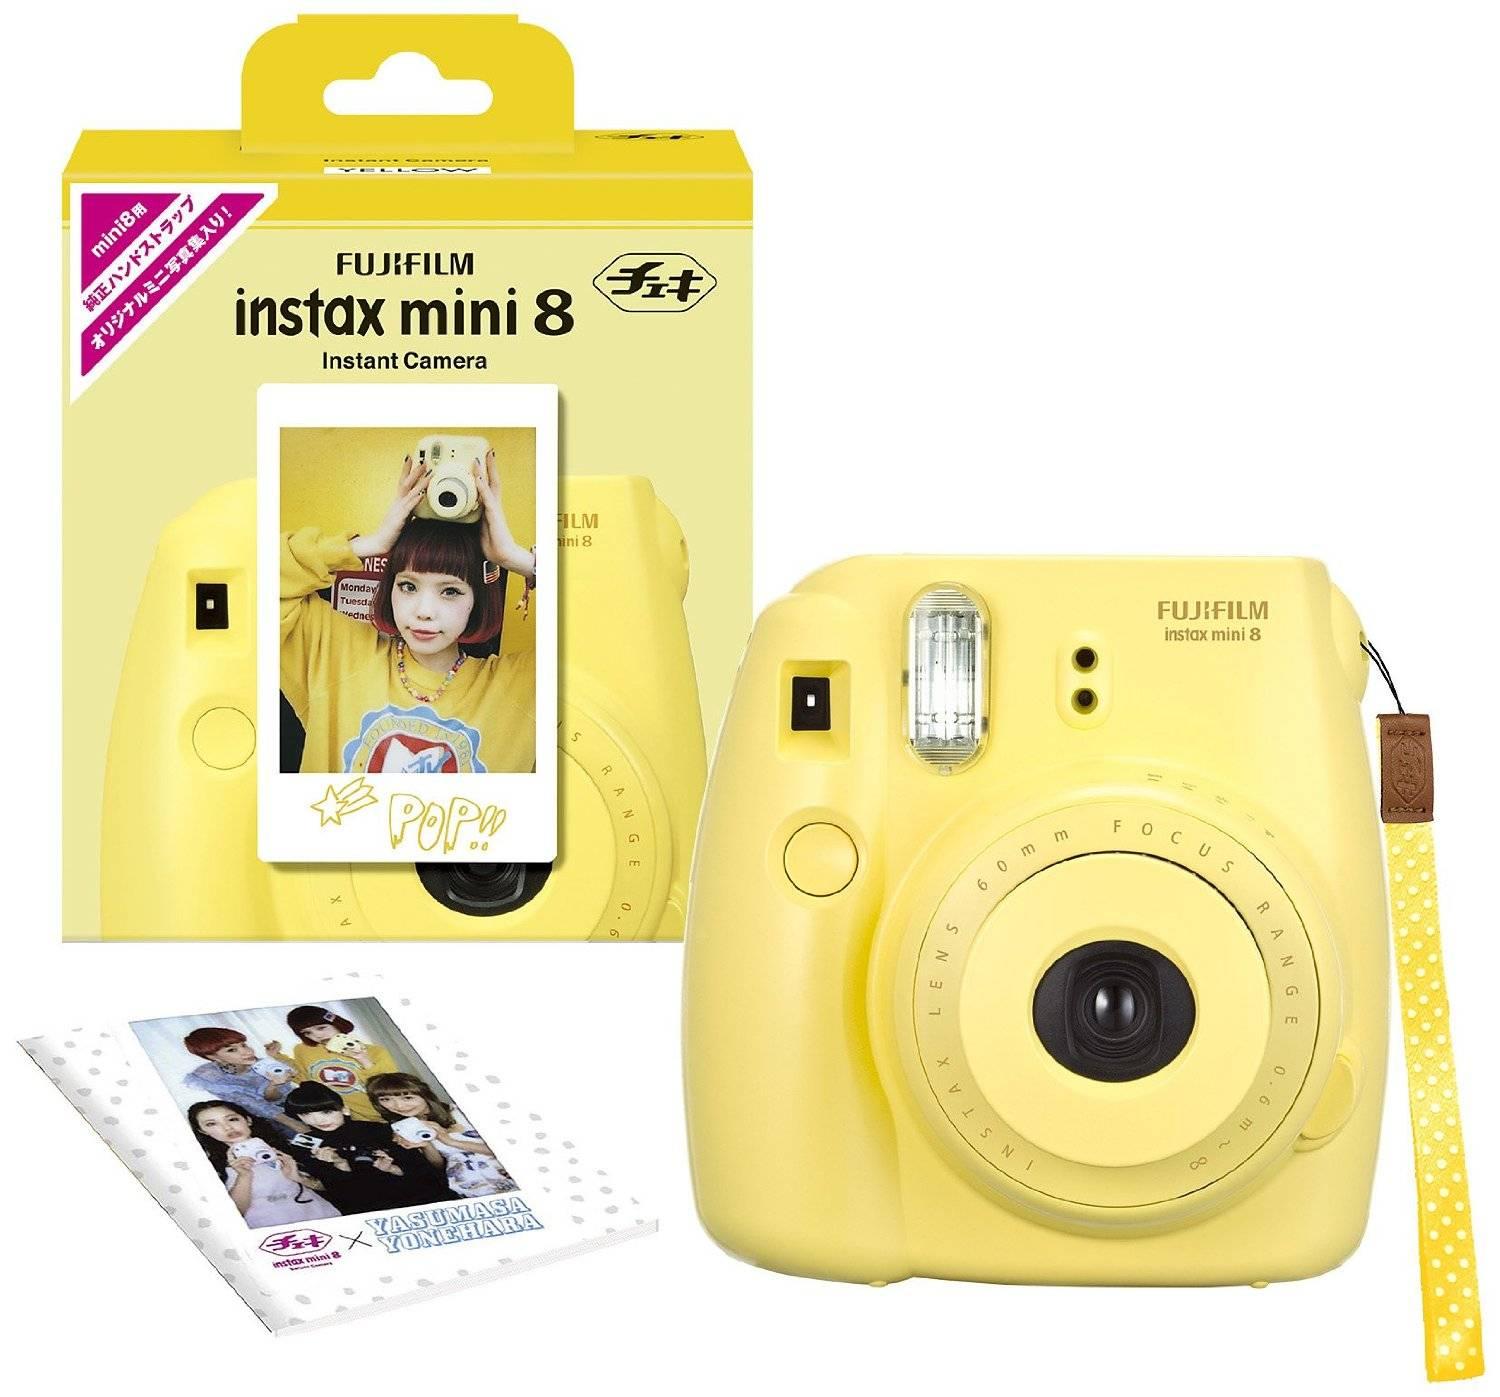 Fujifilm Instax Mini 8 INS MINI 8 YELLOW N Instant Camera